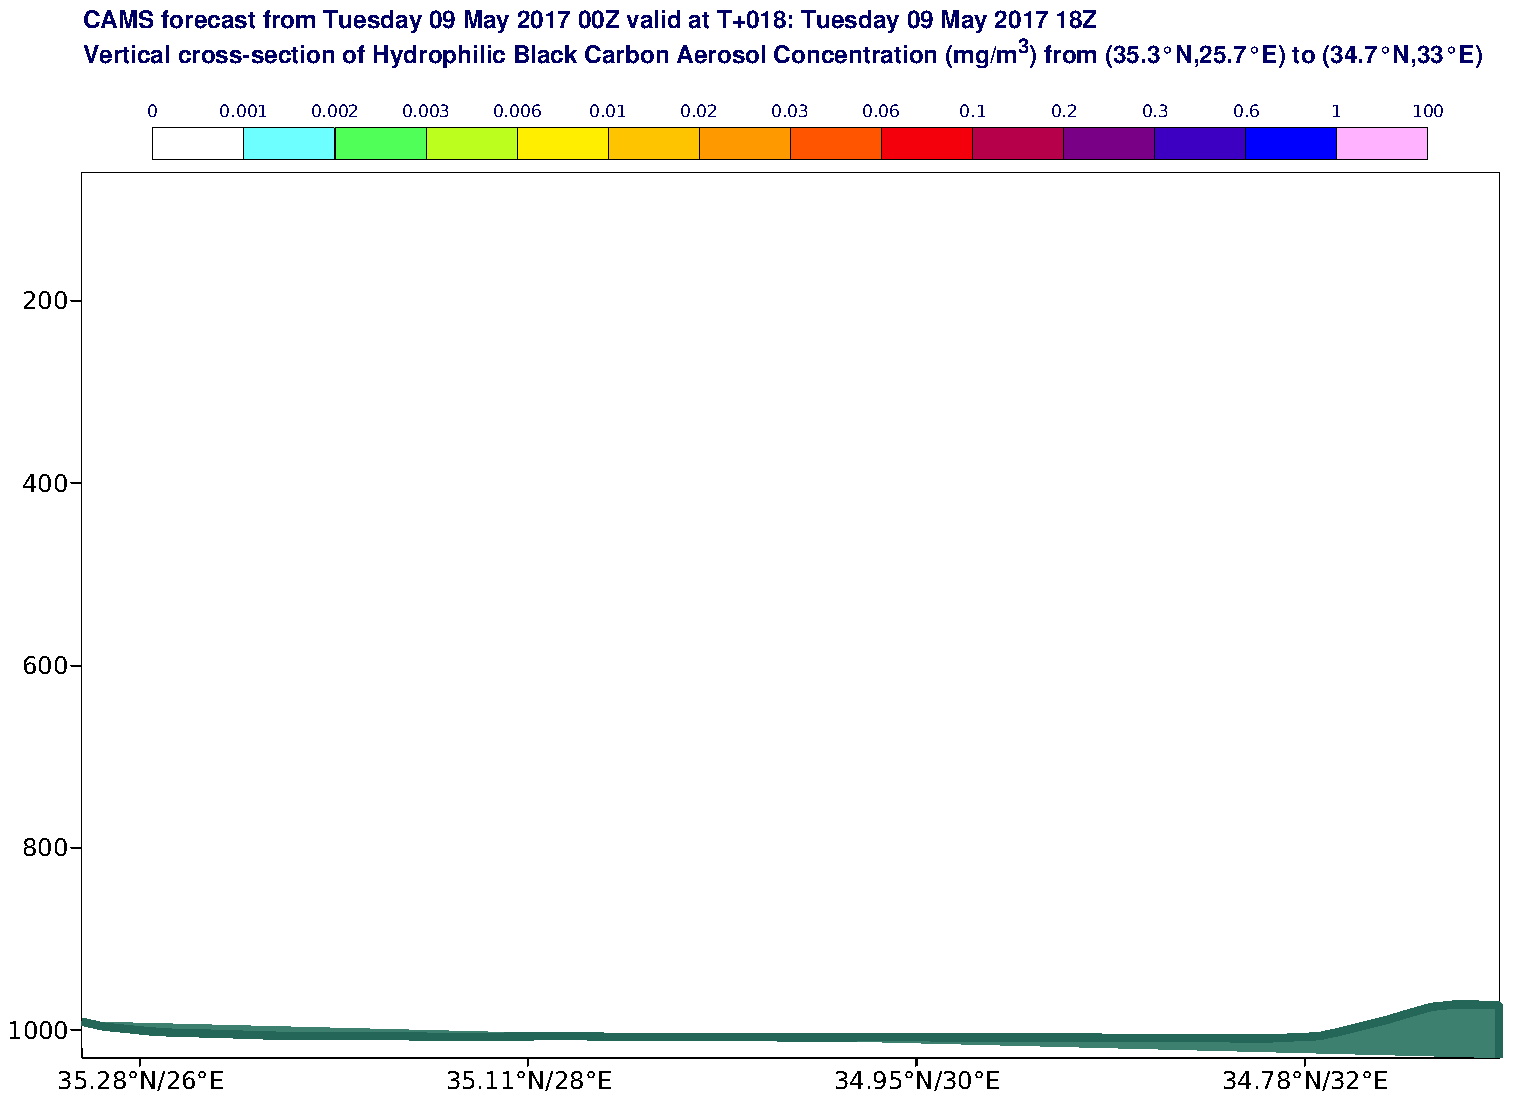 Vertical cross-section of Hydrophilic Black Carbon Aerosol Concentration (mg/m3) valid at T18 - 2017-05-09 18:00